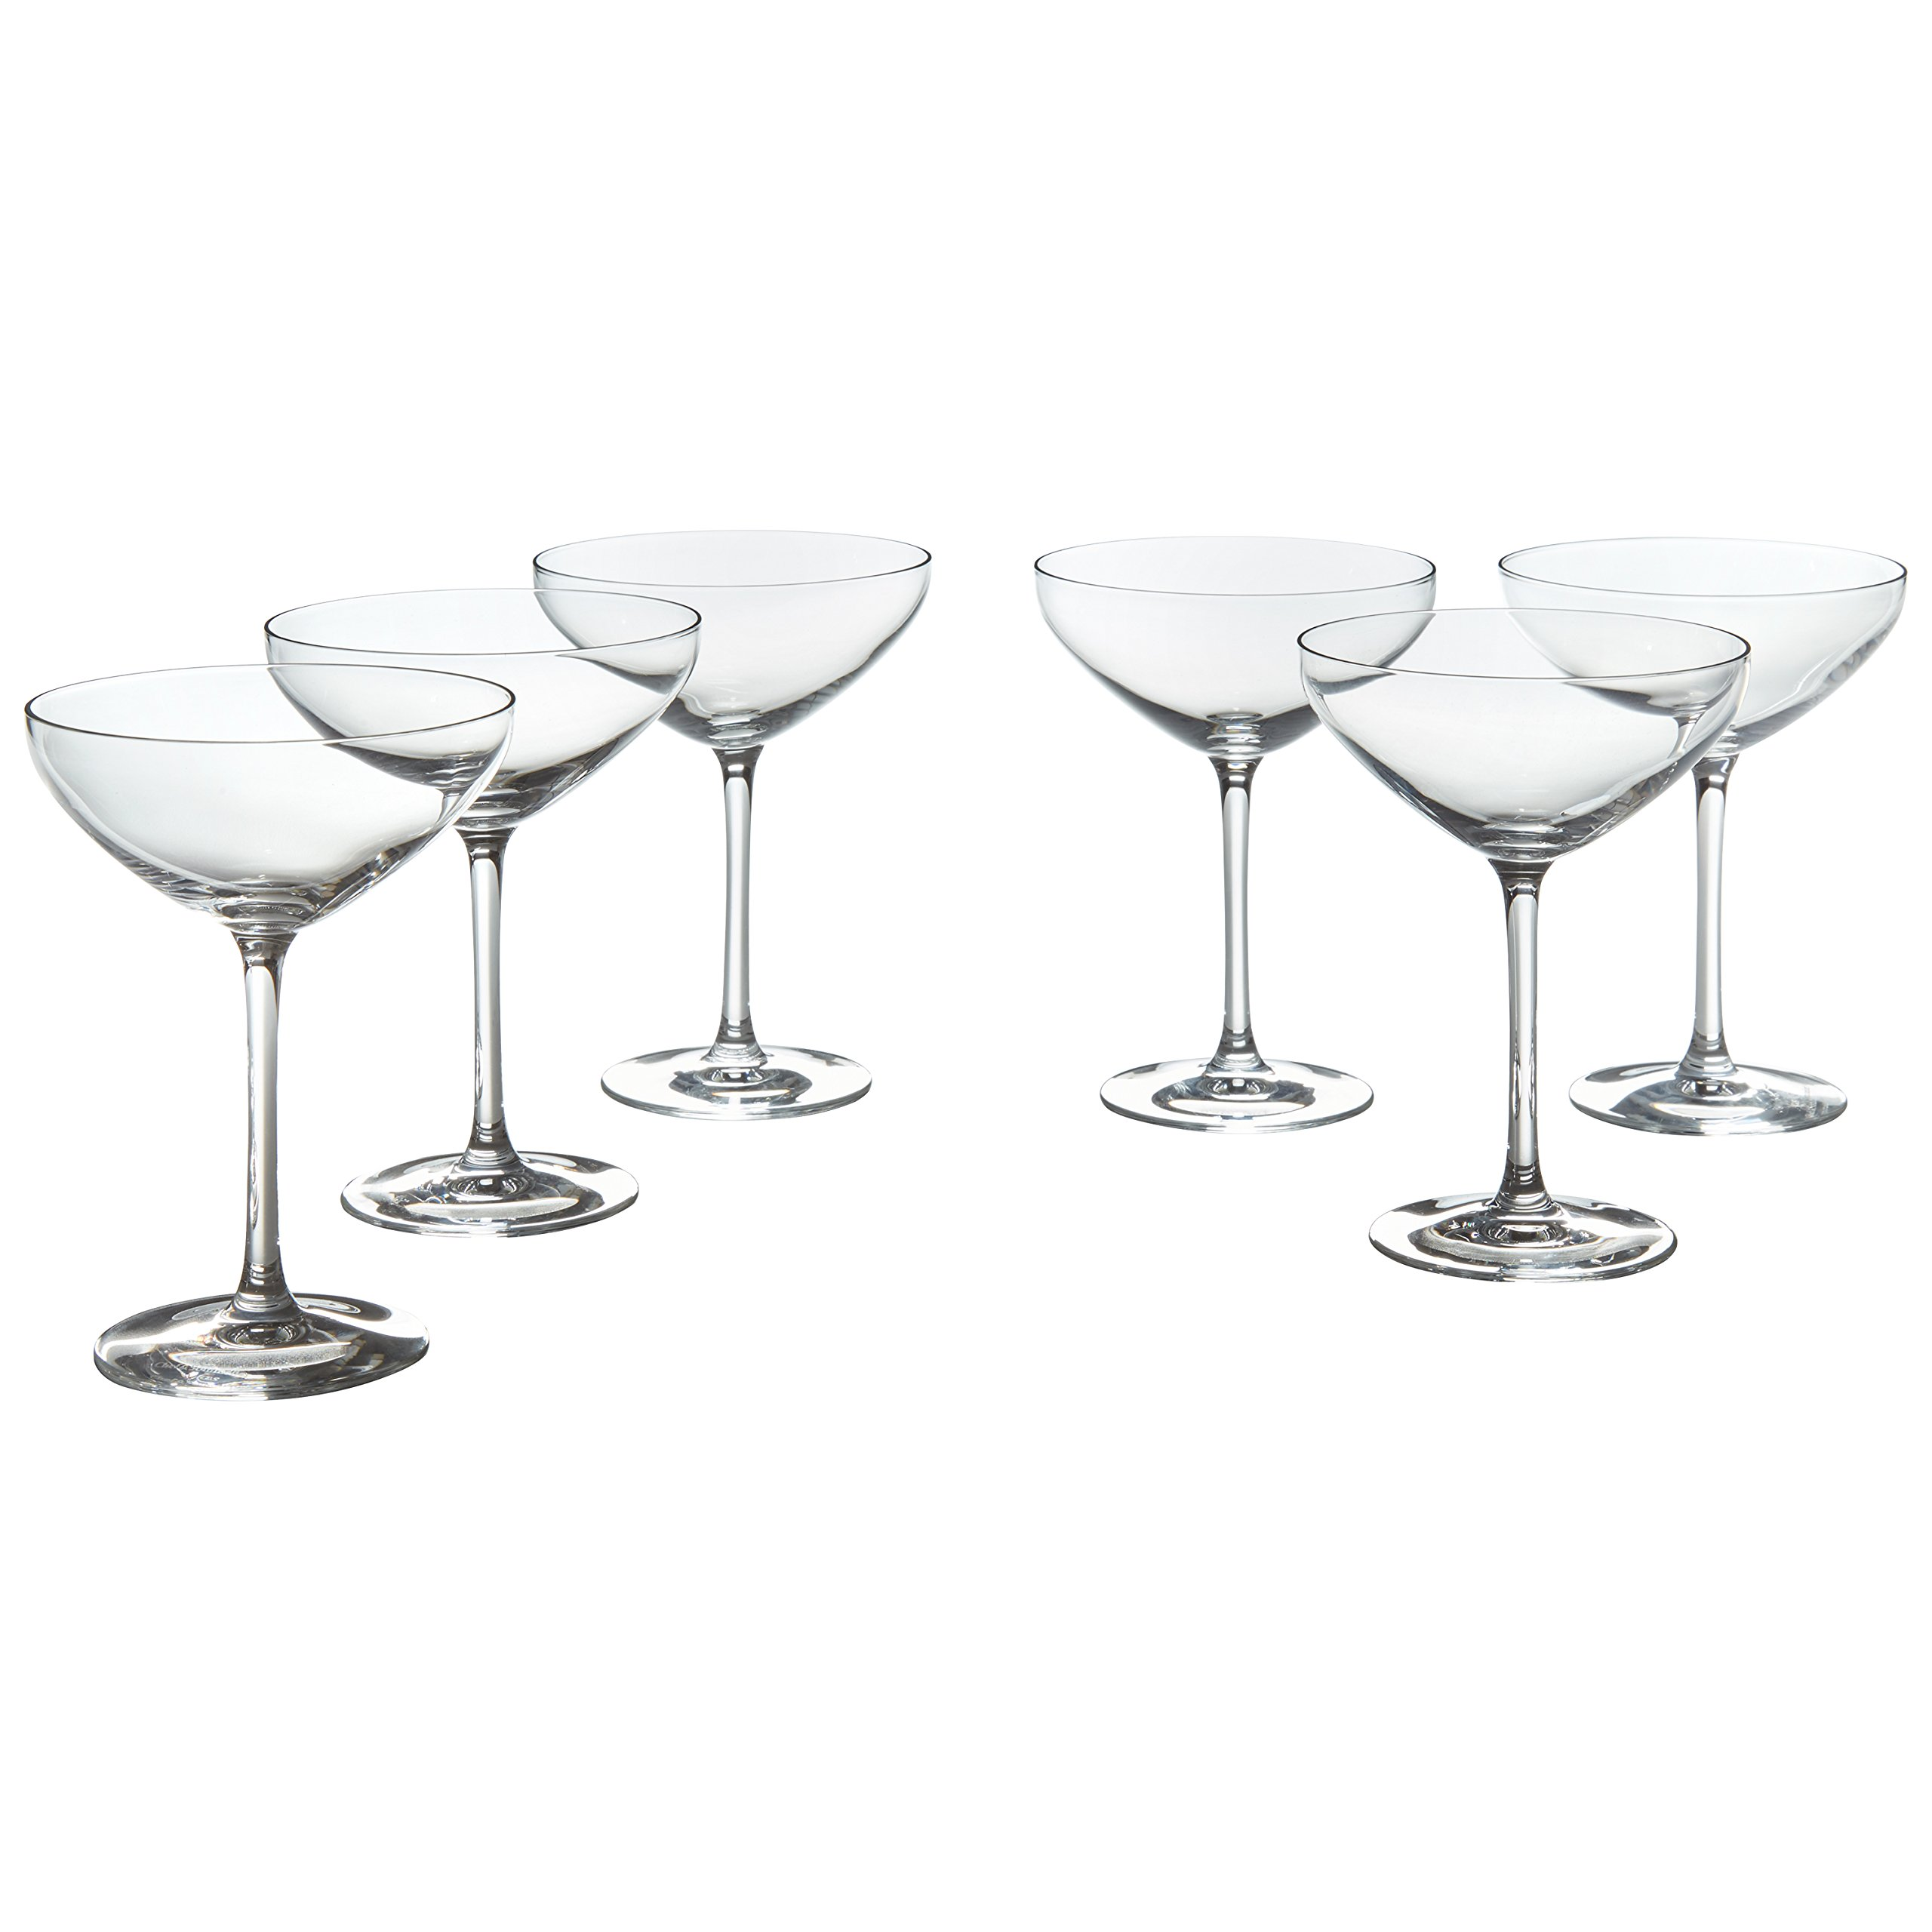 Stone & Beam Traditional Martini Coupe Glass, 8-Ounce, Set of 6 by Stone & Beam